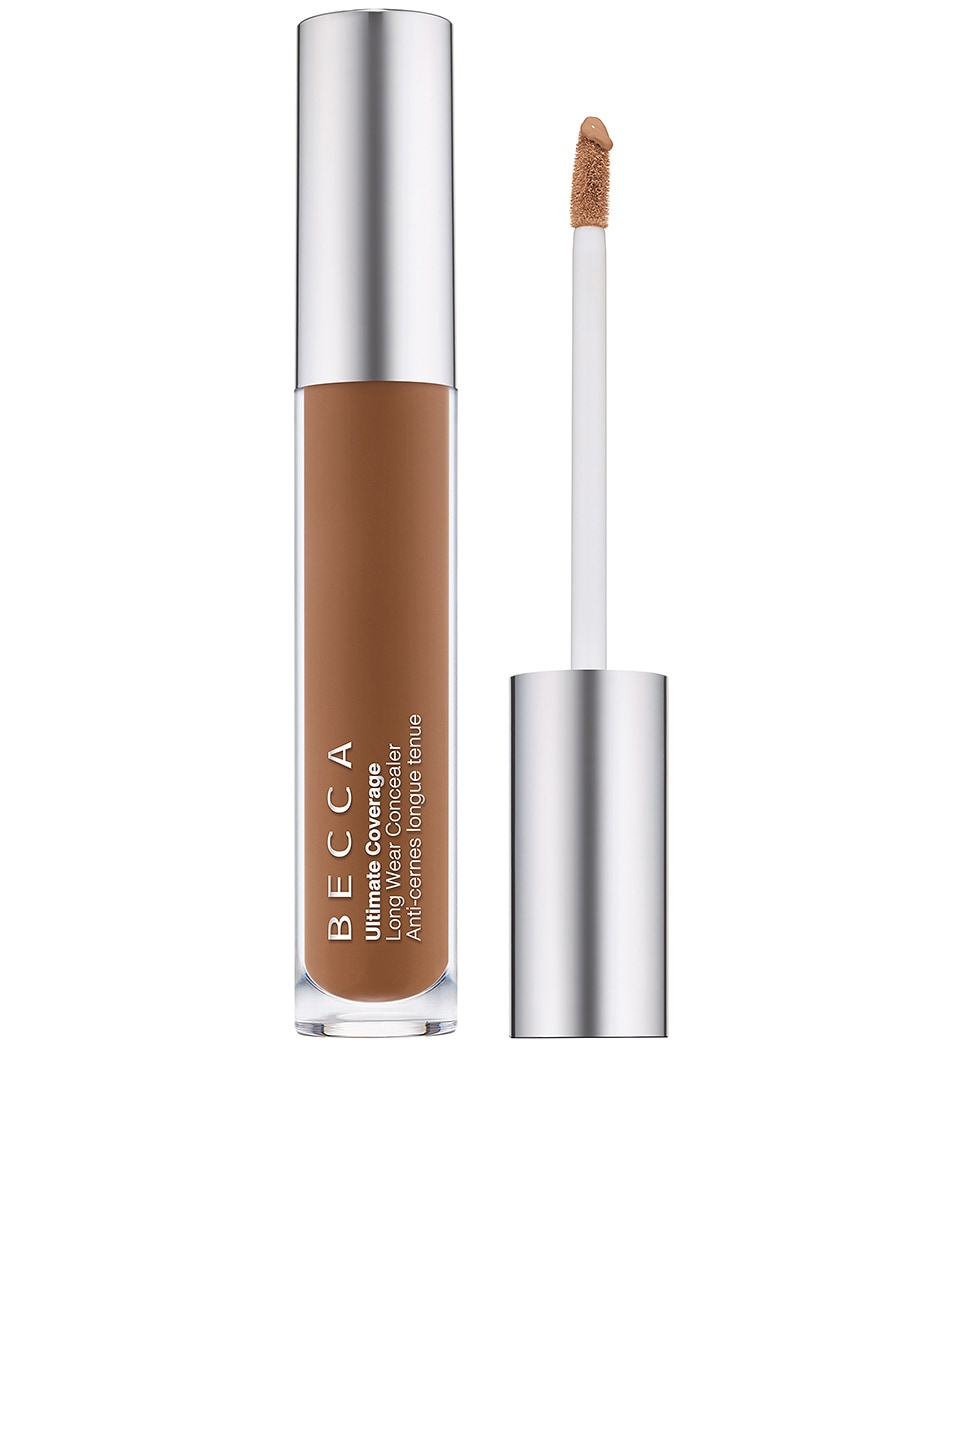 BECCA Ultimate Coverage Longwear Concealer in Cinnamon